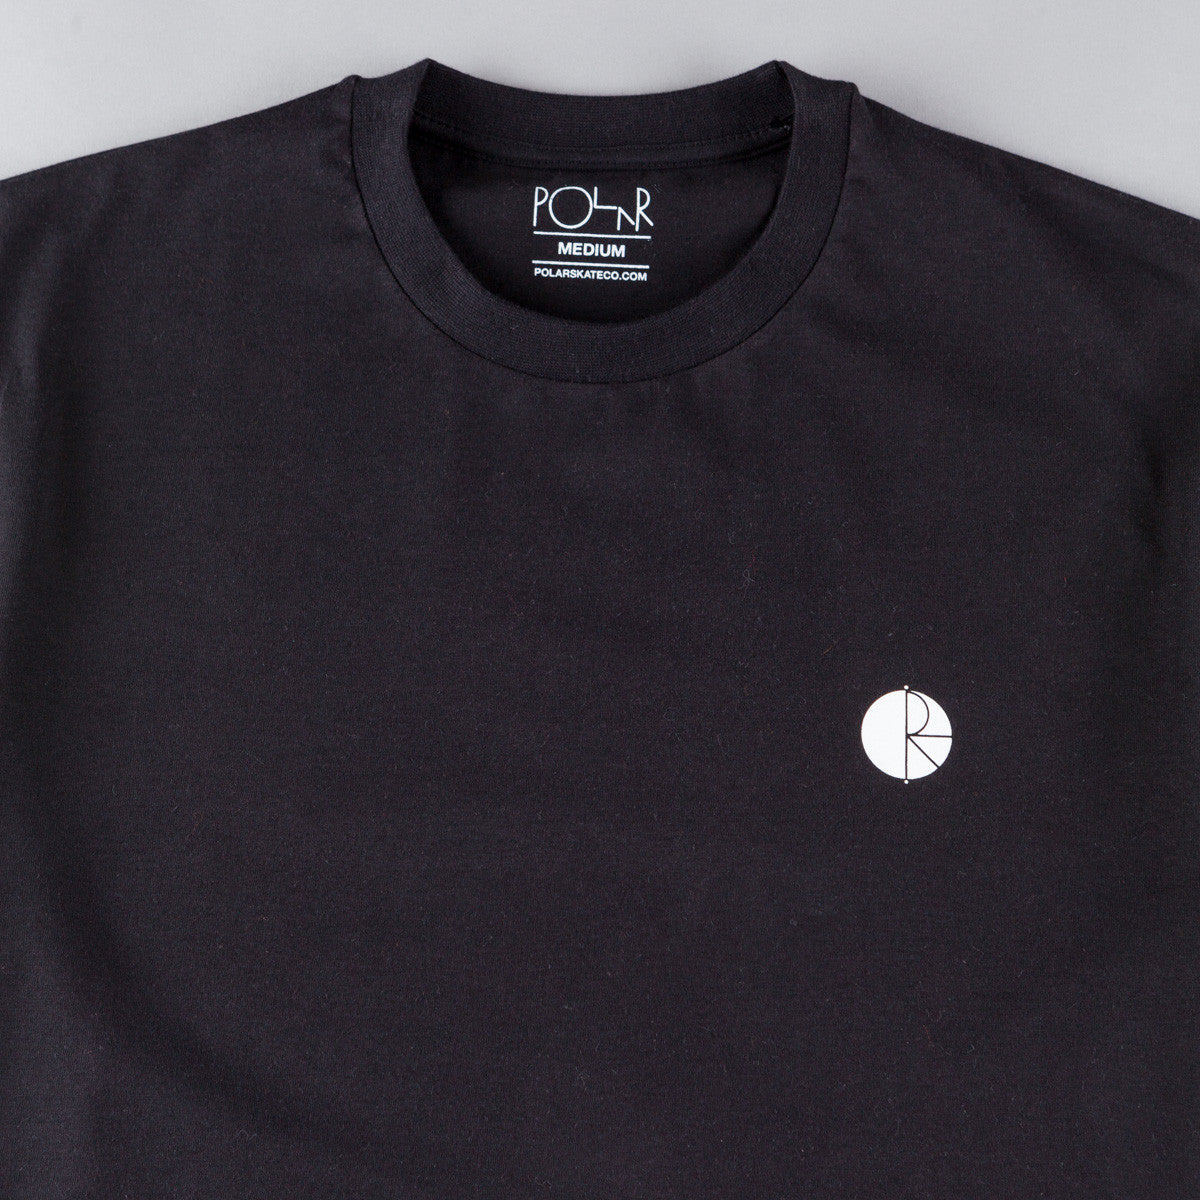 Polar Fill Logo Chest T-Shirt - Black / White